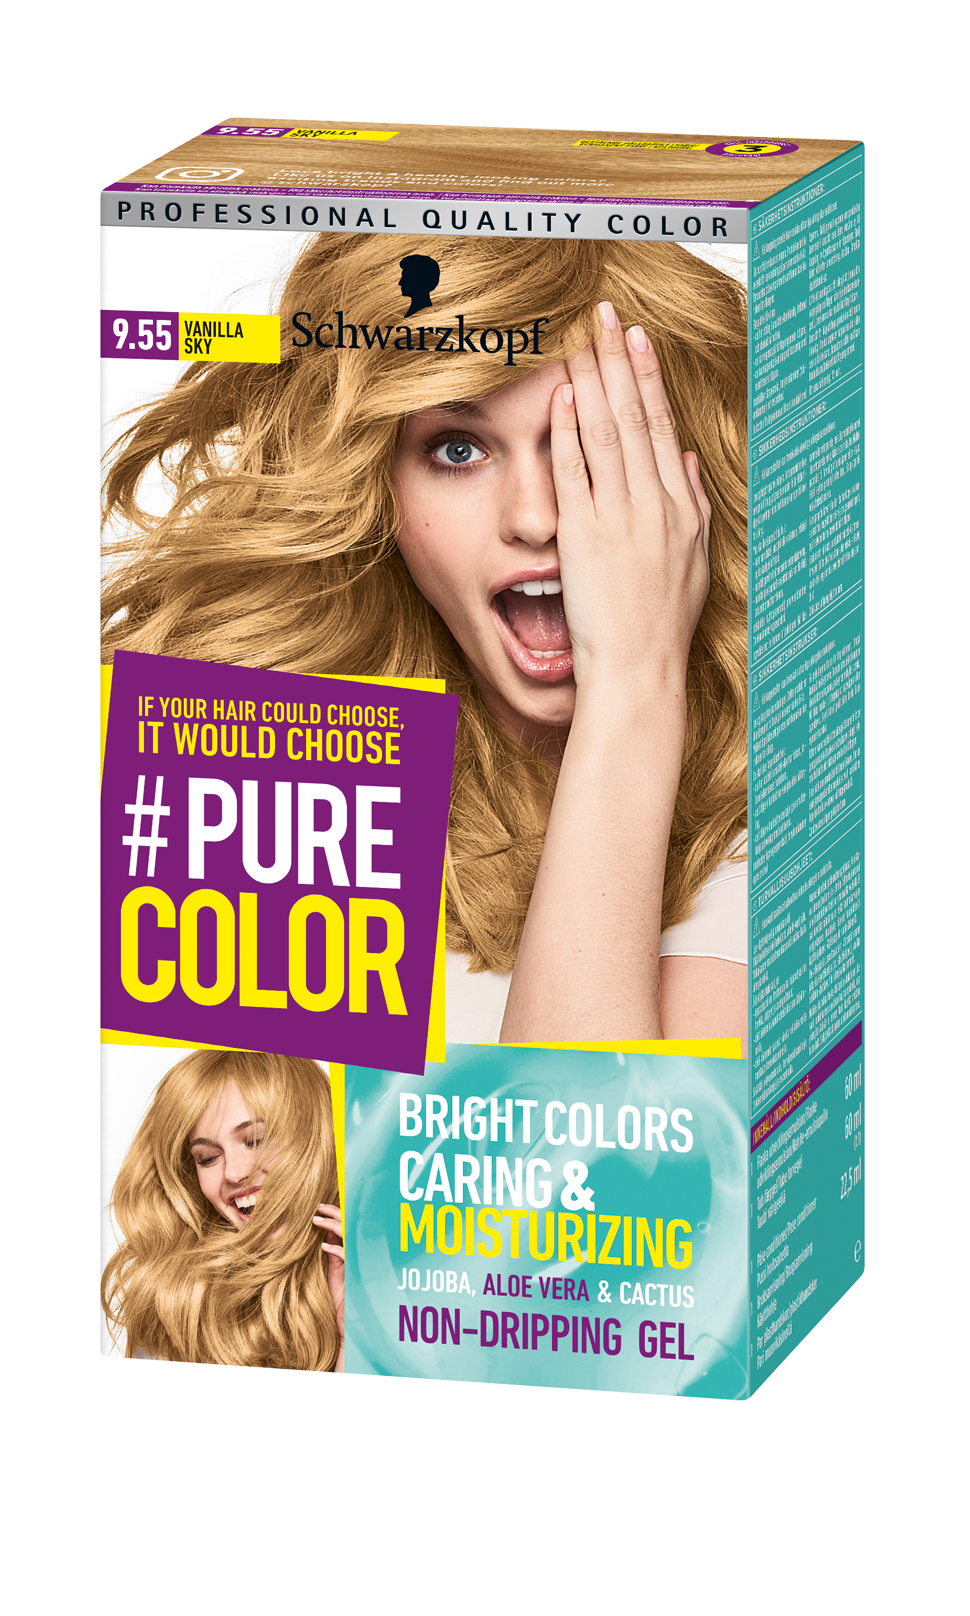 Pure-color-9-55-vanilla-sky